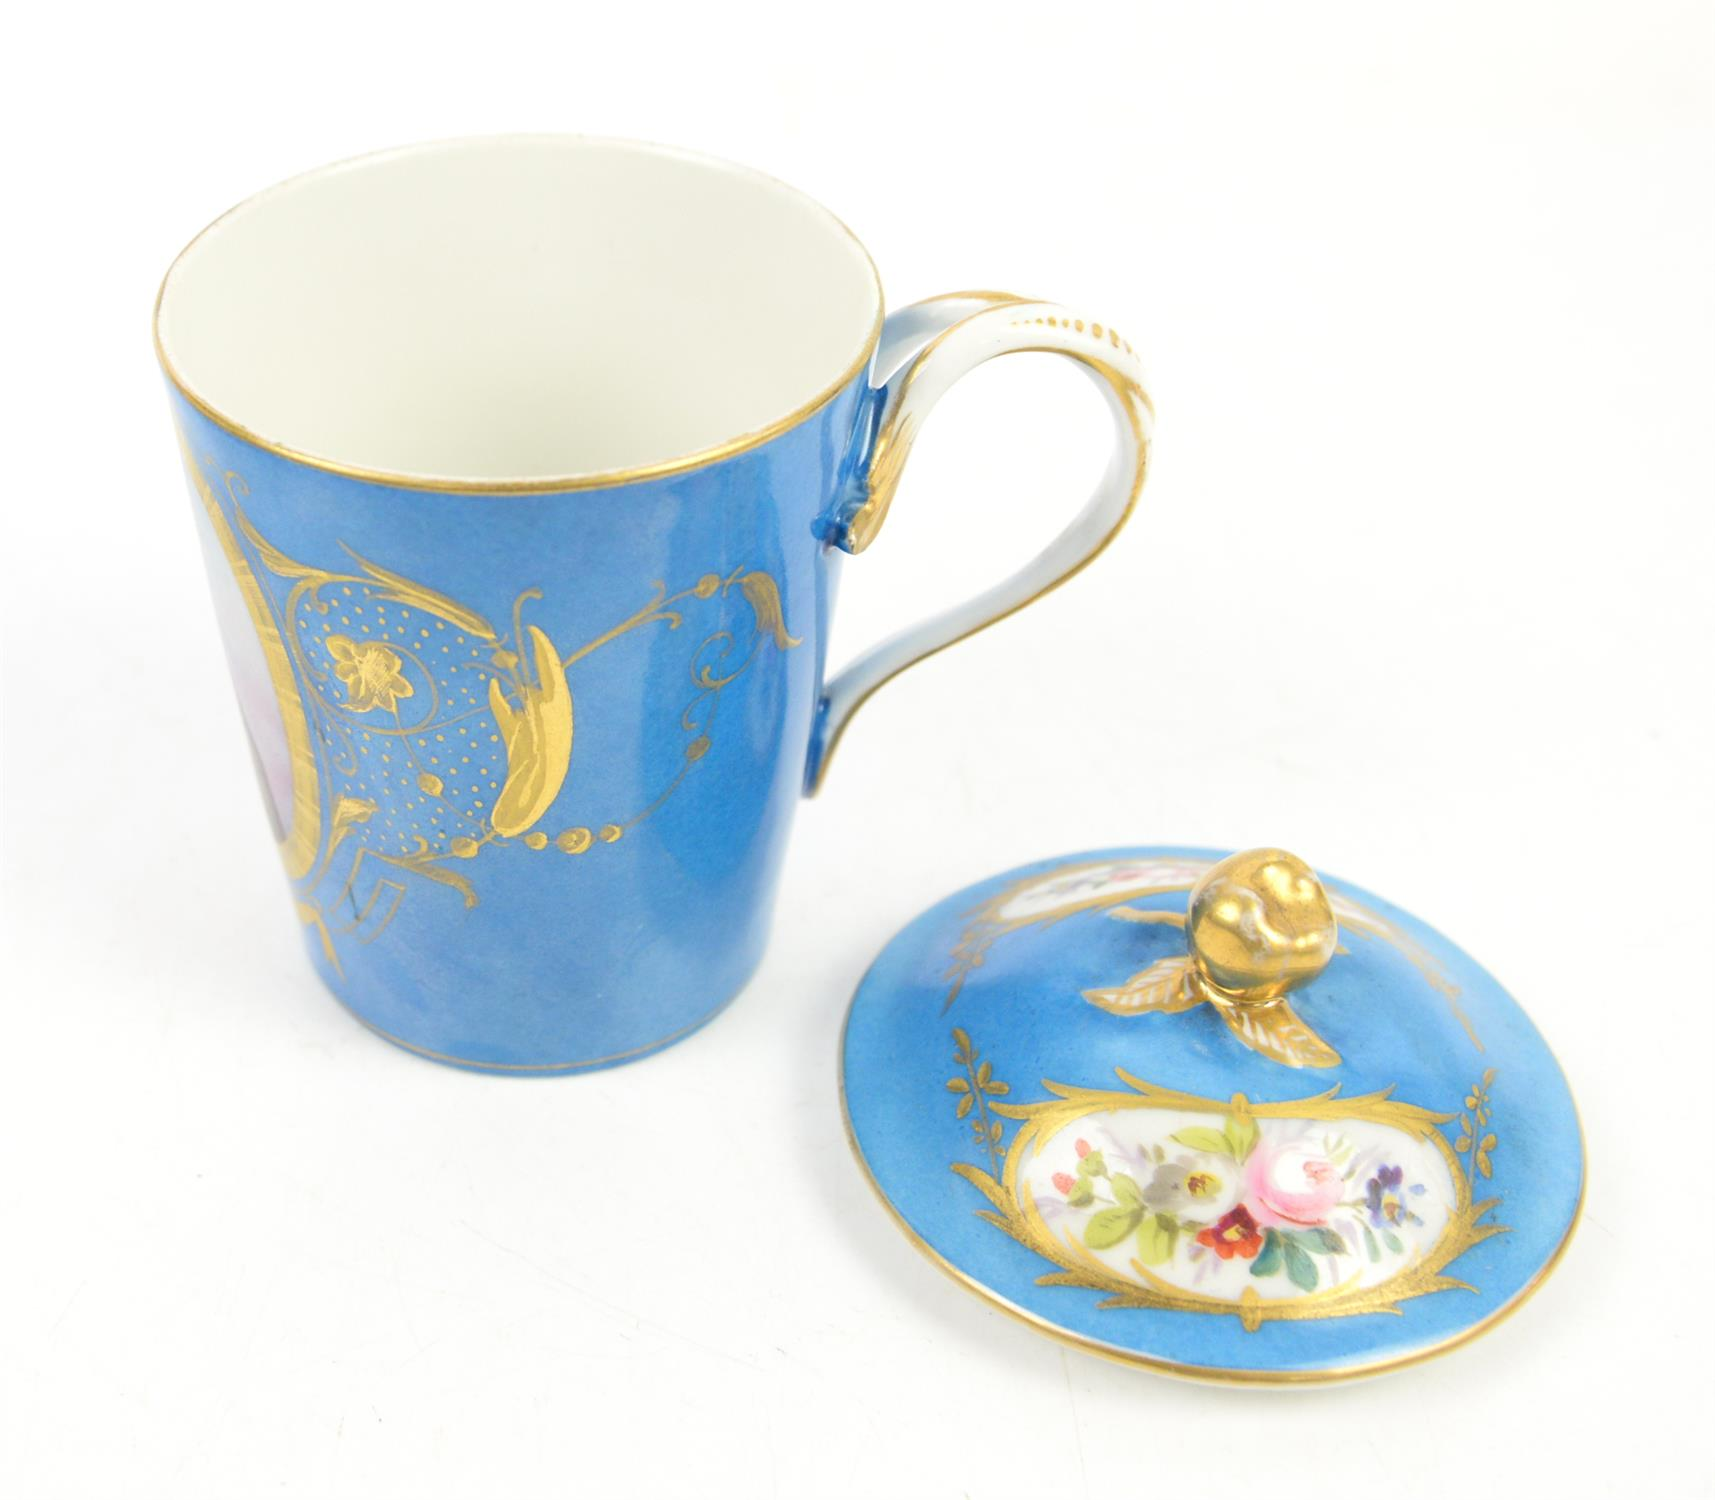 """Early 19th century Sevres """"Bleu Celeste"""" milk cup with cover and saucer, decorated with a portrait - Image 3 of 5"""